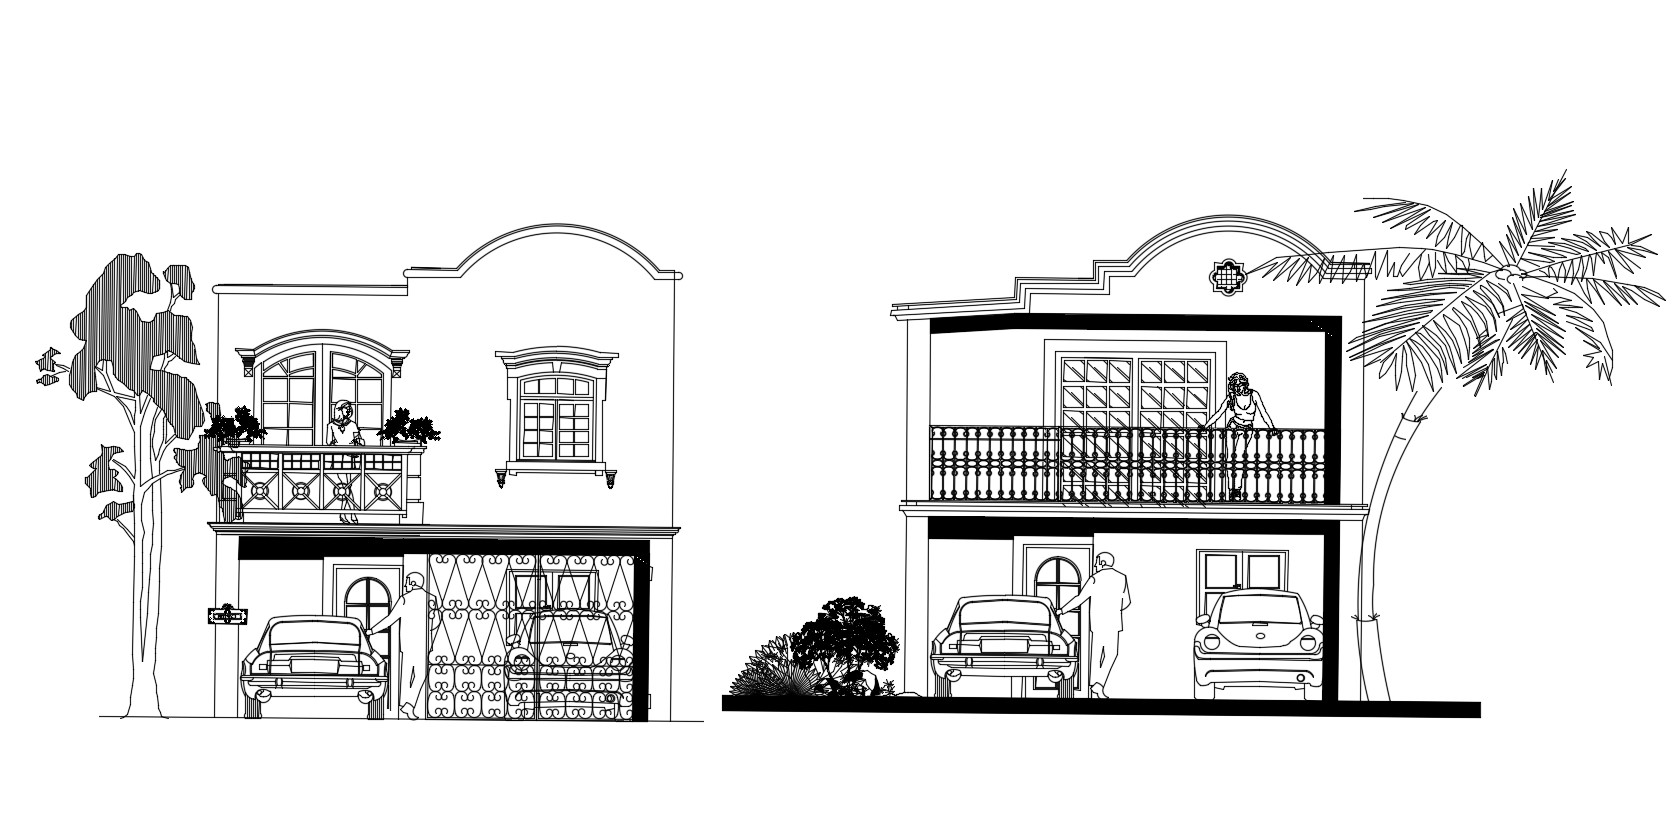 Autocad Drawing Of The House With Elevation